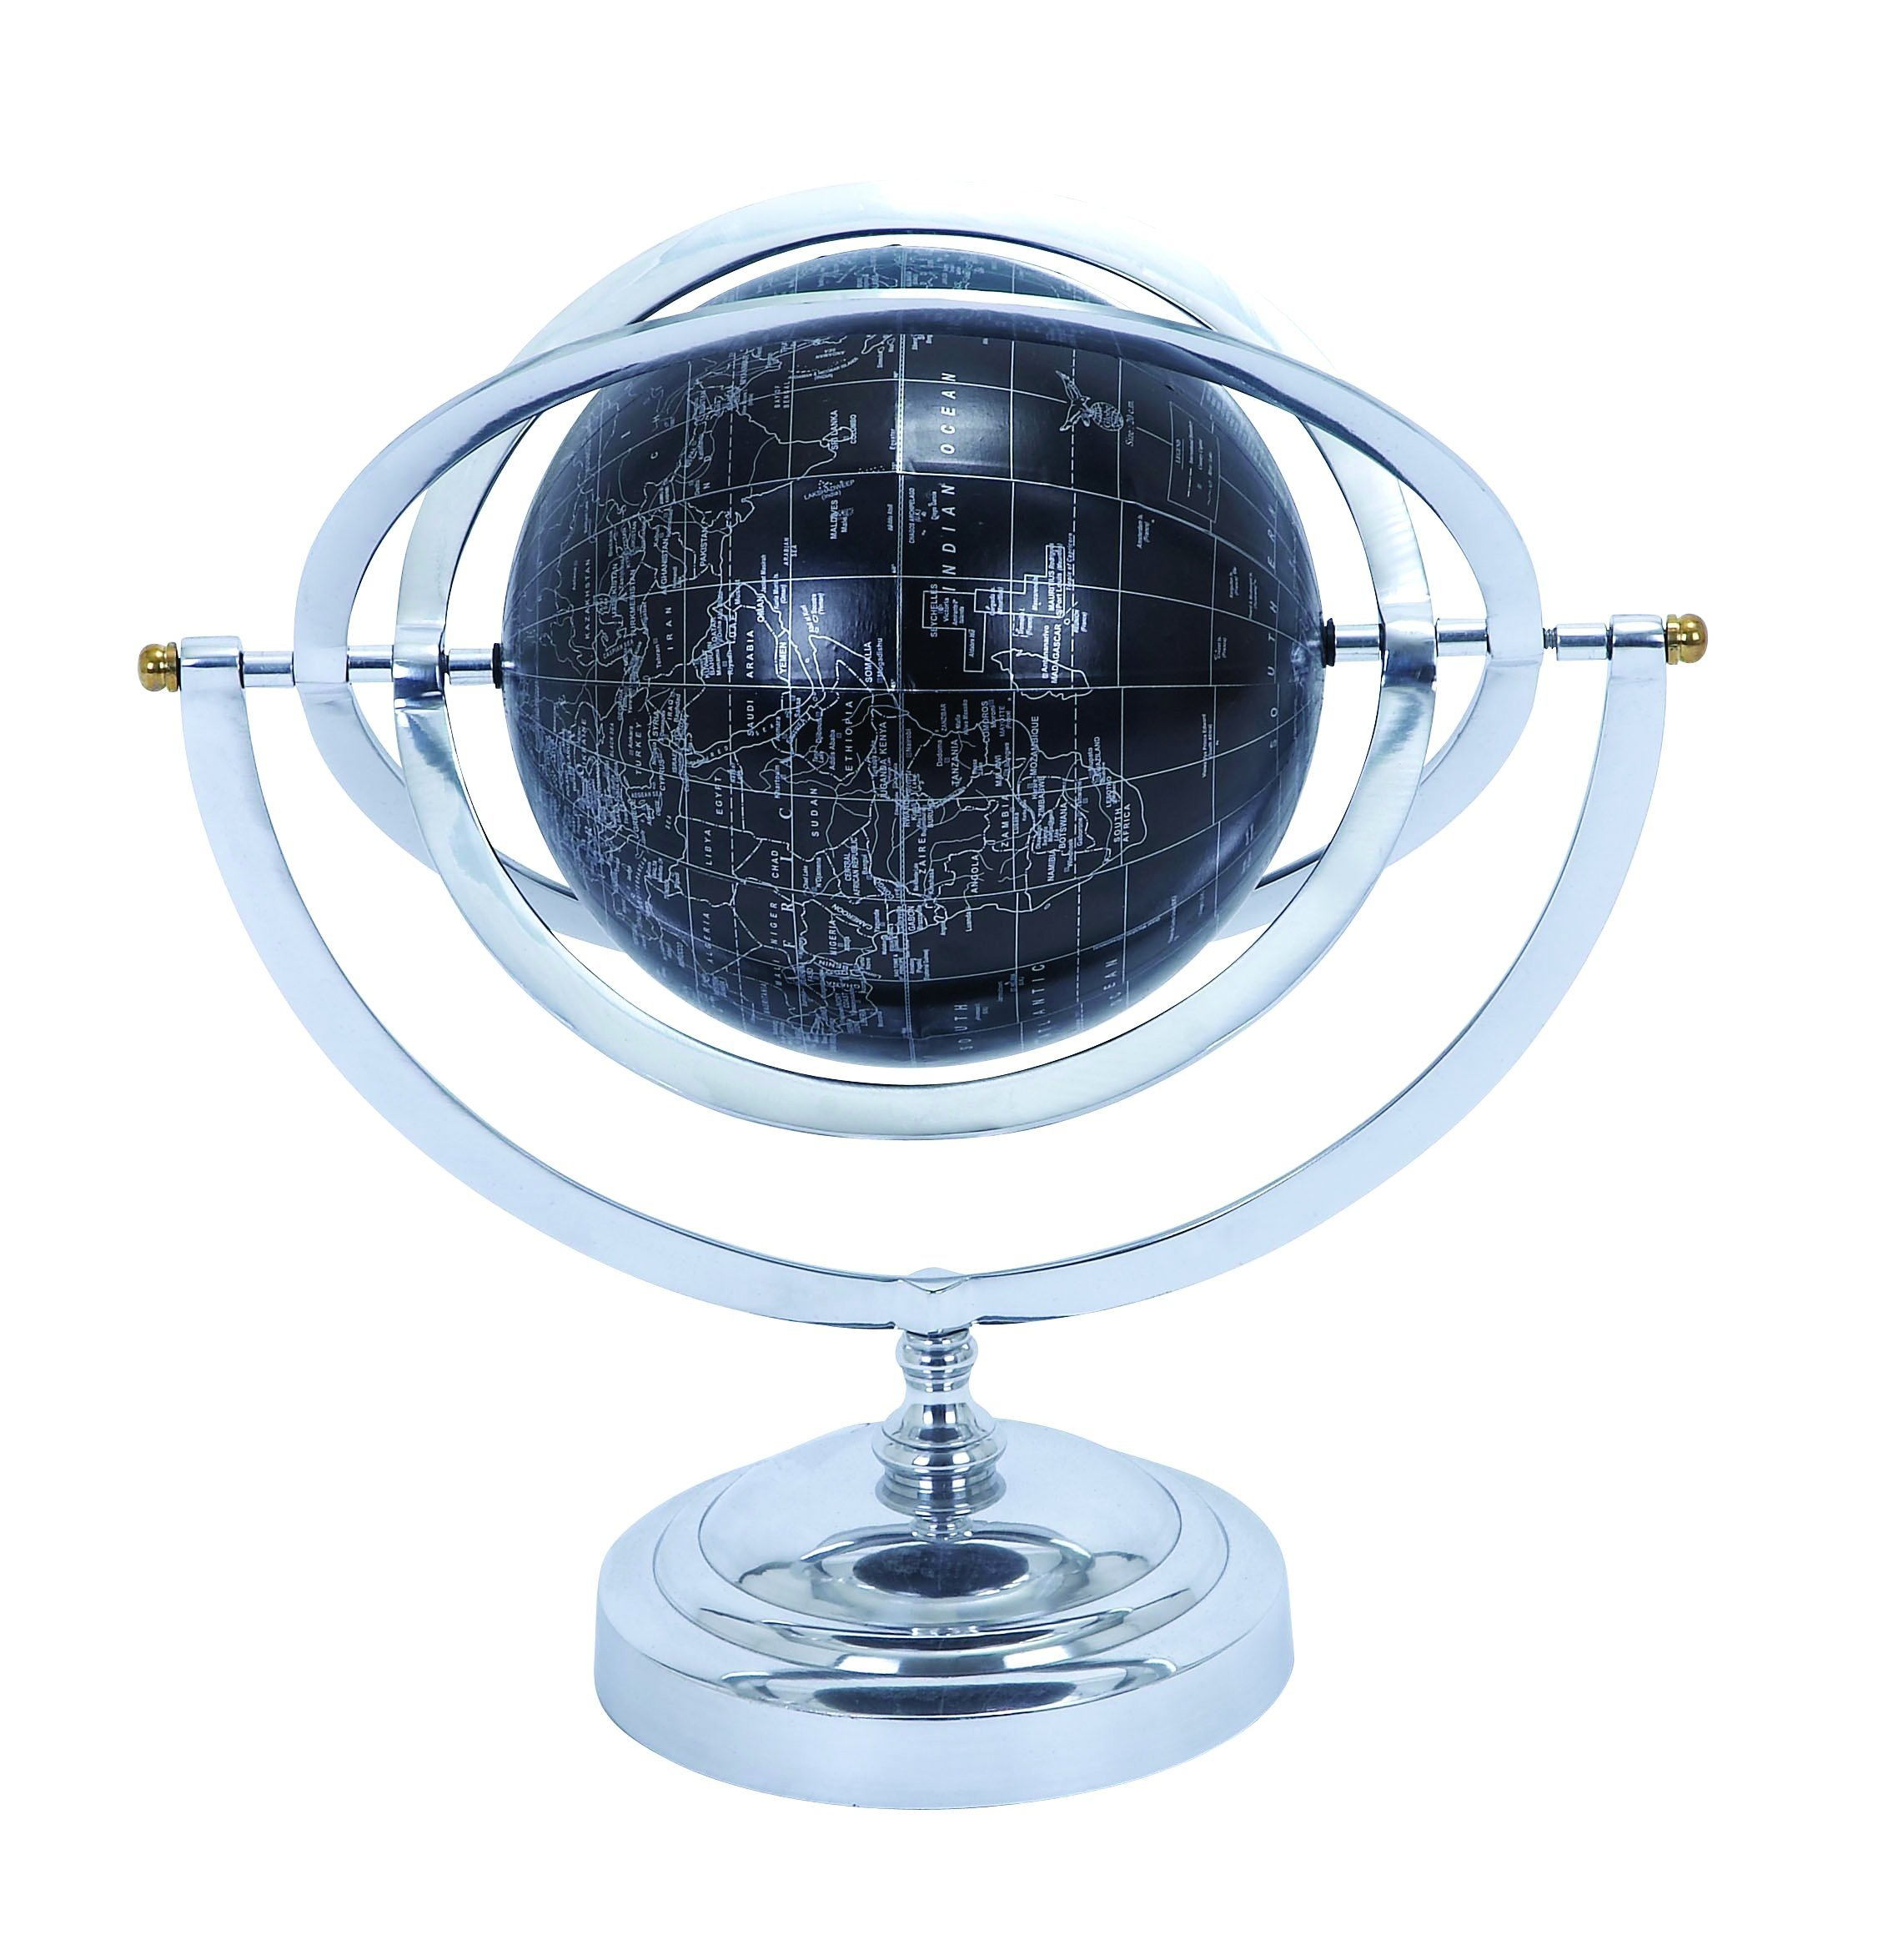 Deco 79 Metal Globe with White Mapping on Matte Black Background